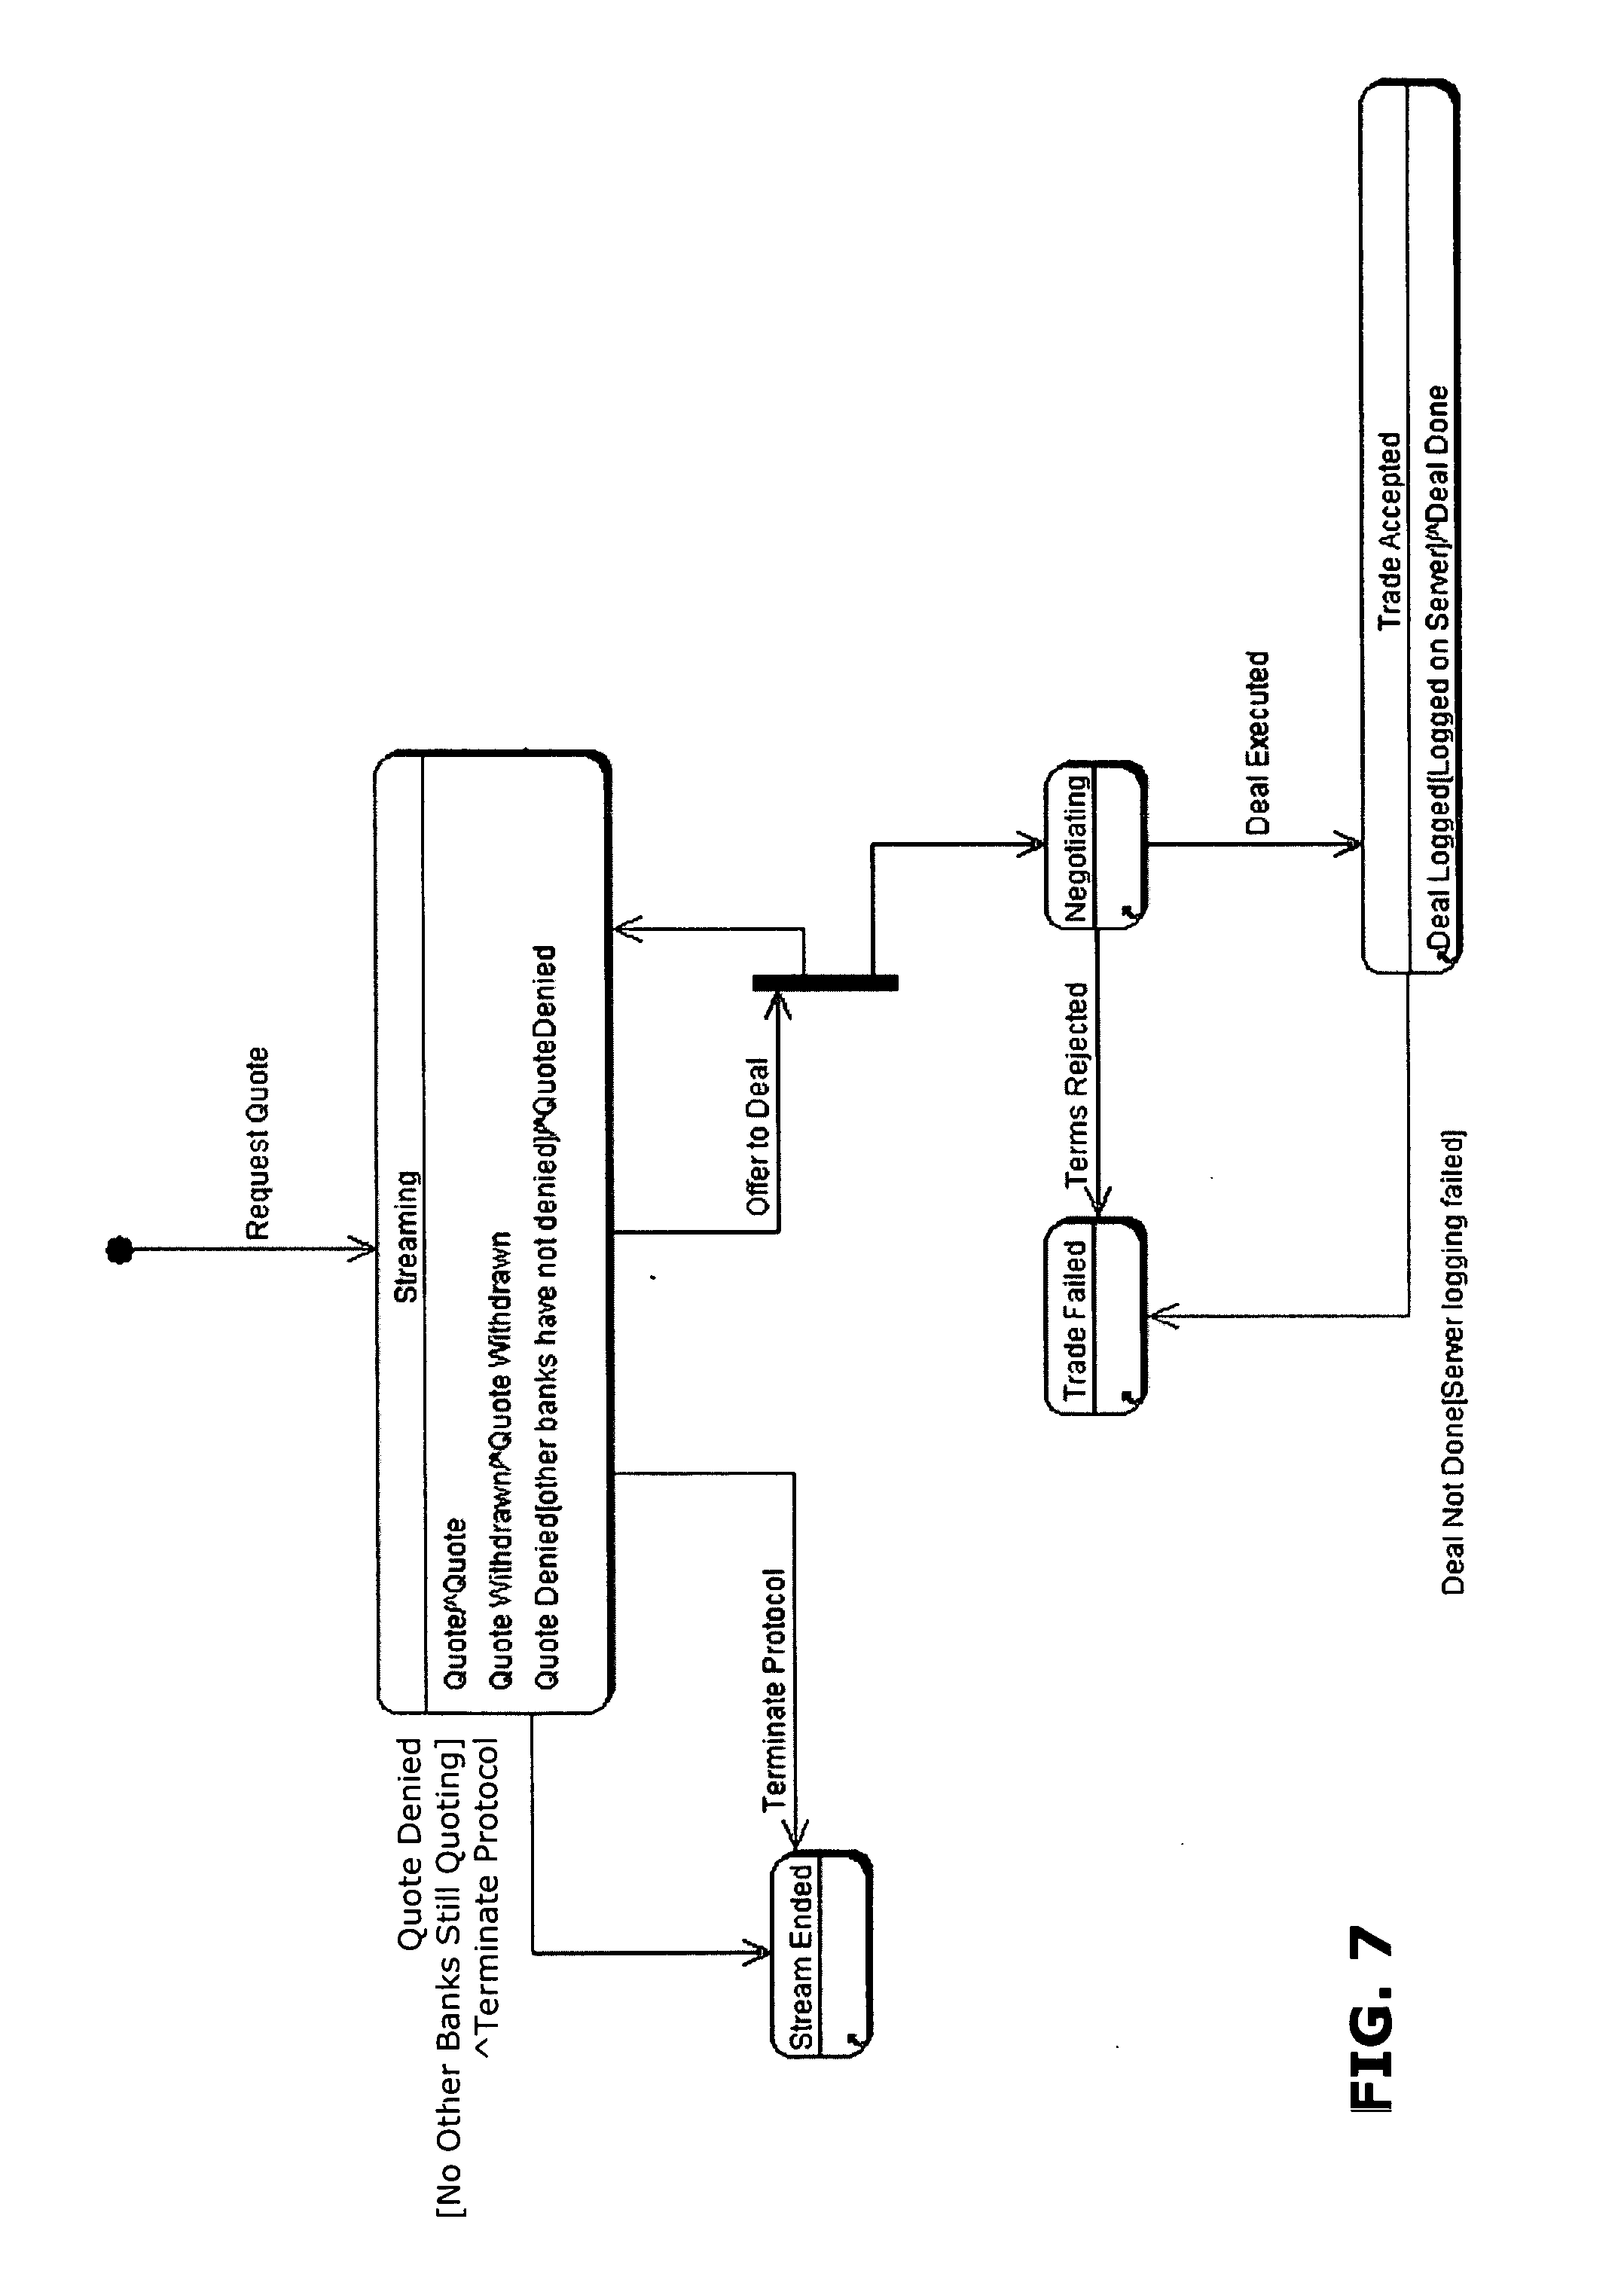 Trading system and methods